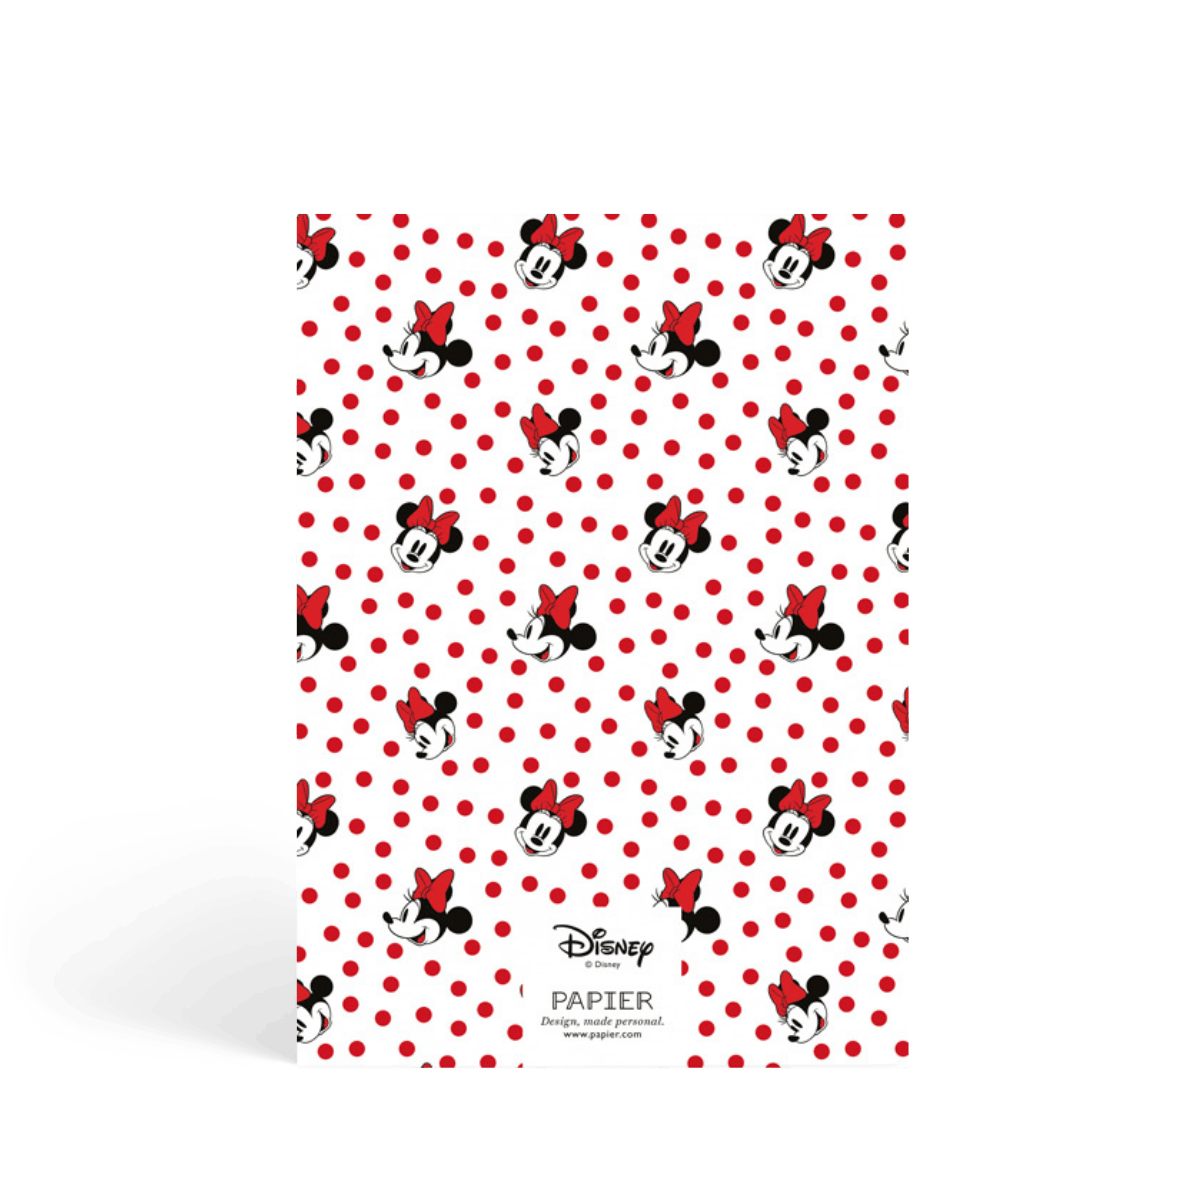 Https%3a%2f%2fwww.papier.com%2fproduct image%2f72084%2f5%2fminnie mouse 16999 back 1555449306.png?ixlib=rb 1.1